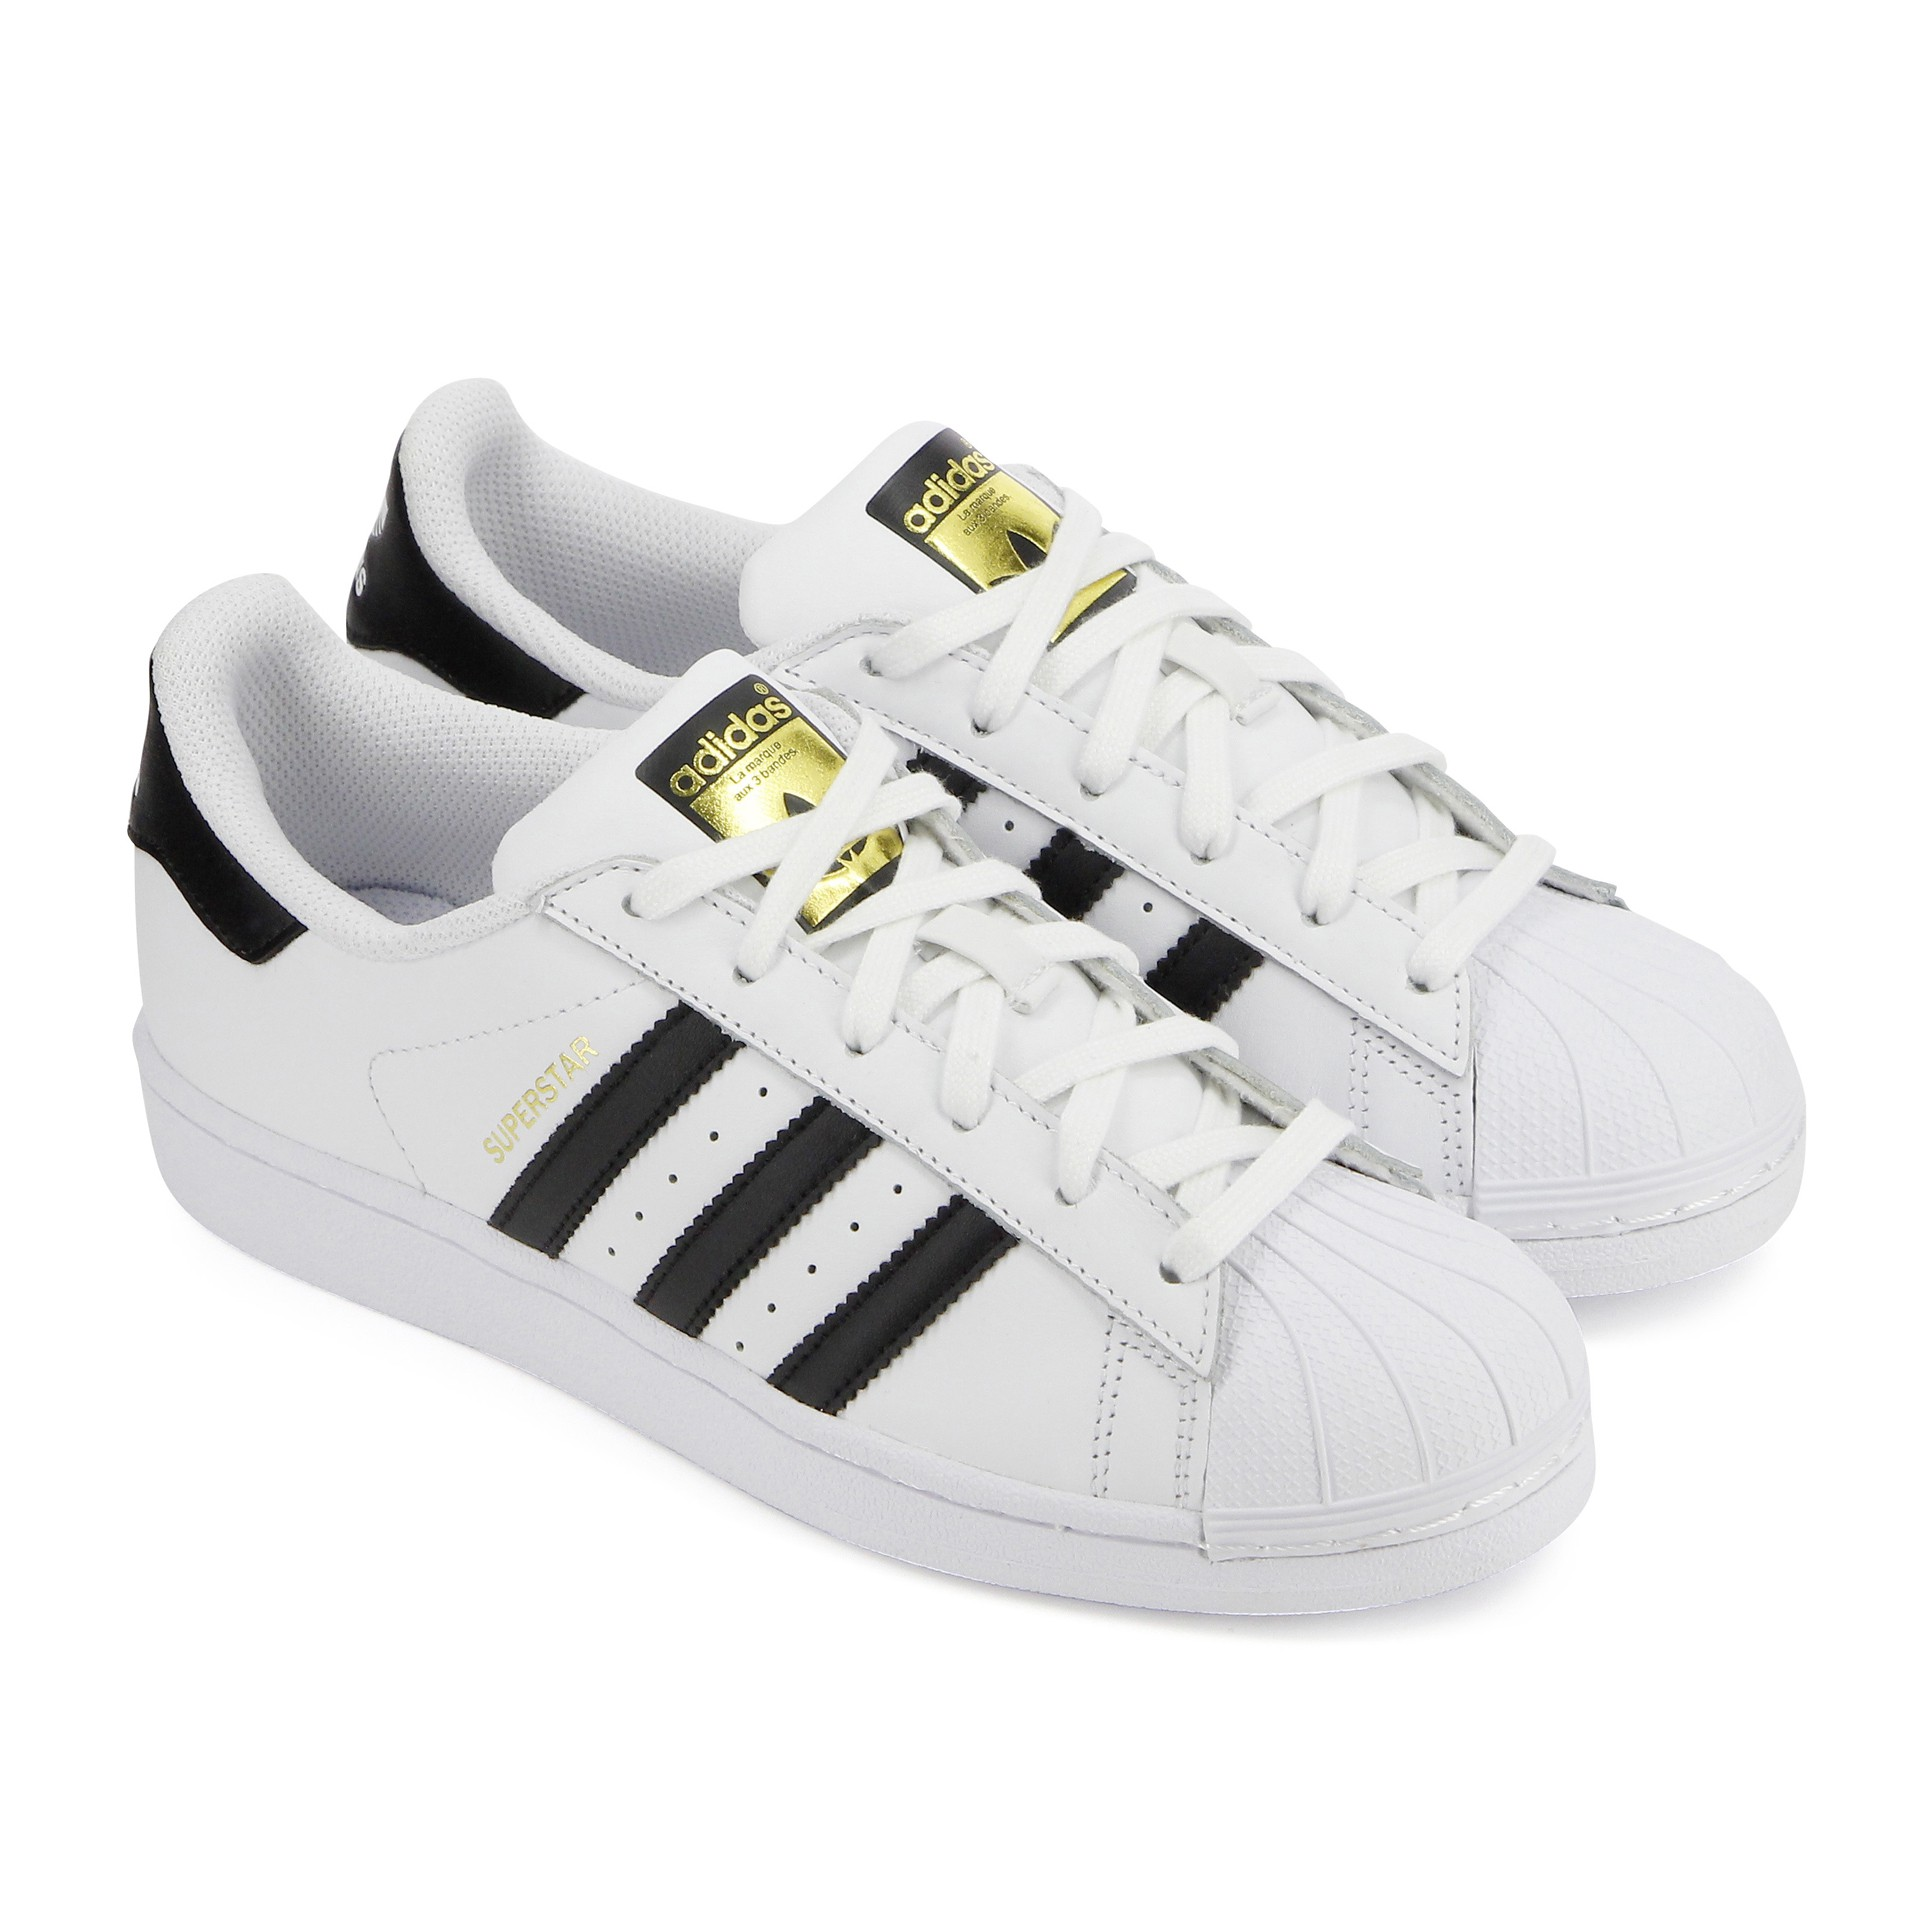 adidas pas cher taille 39 allow project.eu